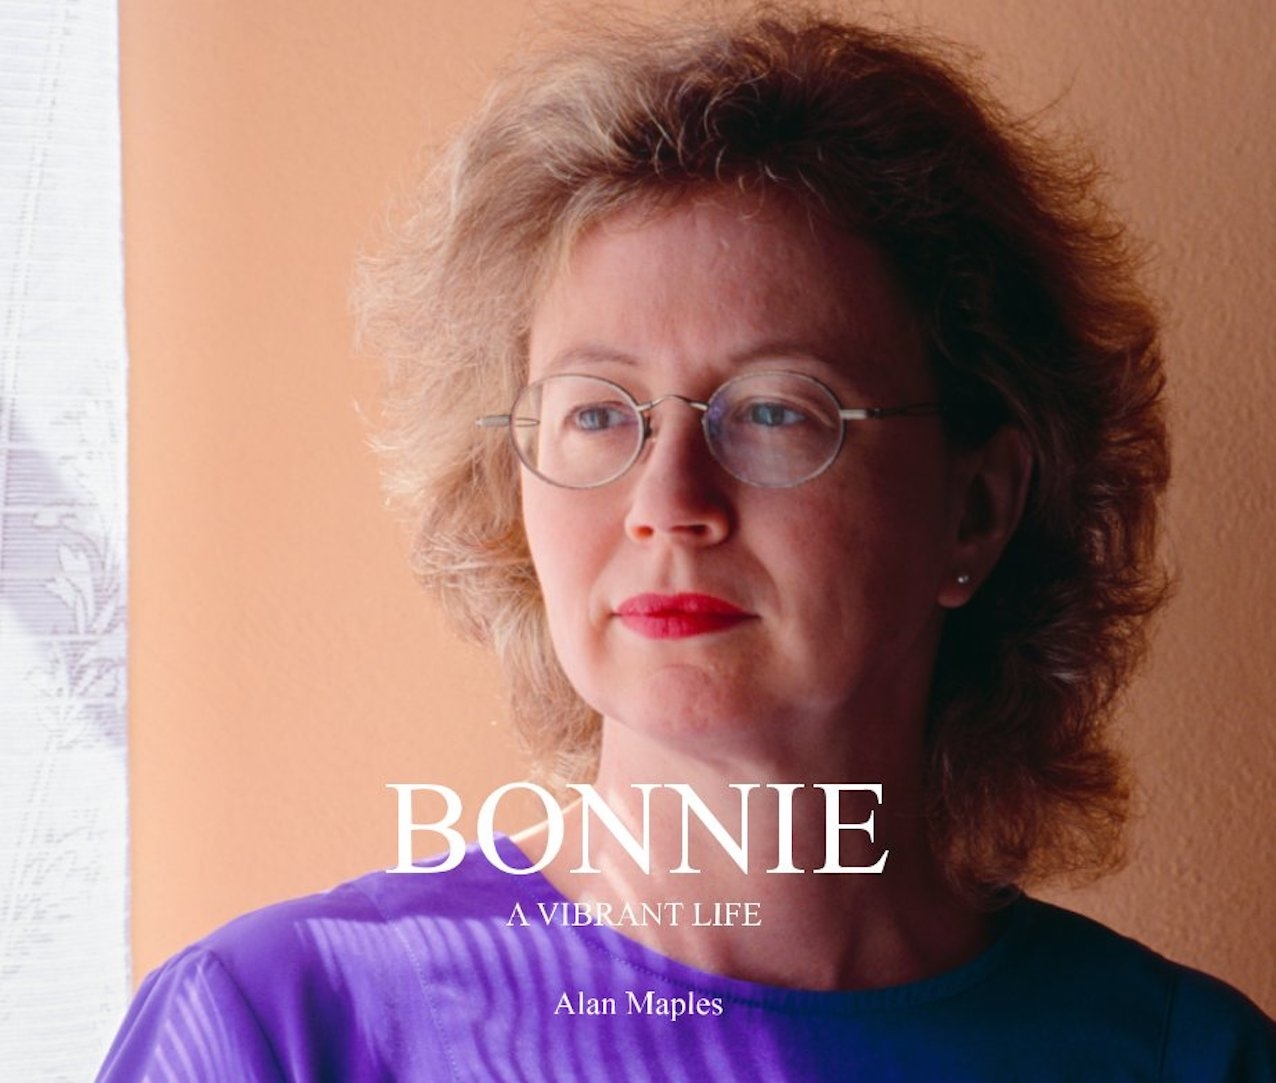 """Bonnie Maples on the cover of a book titled """"Bonnie: A Vibrant Life by Alan Maples""""."""